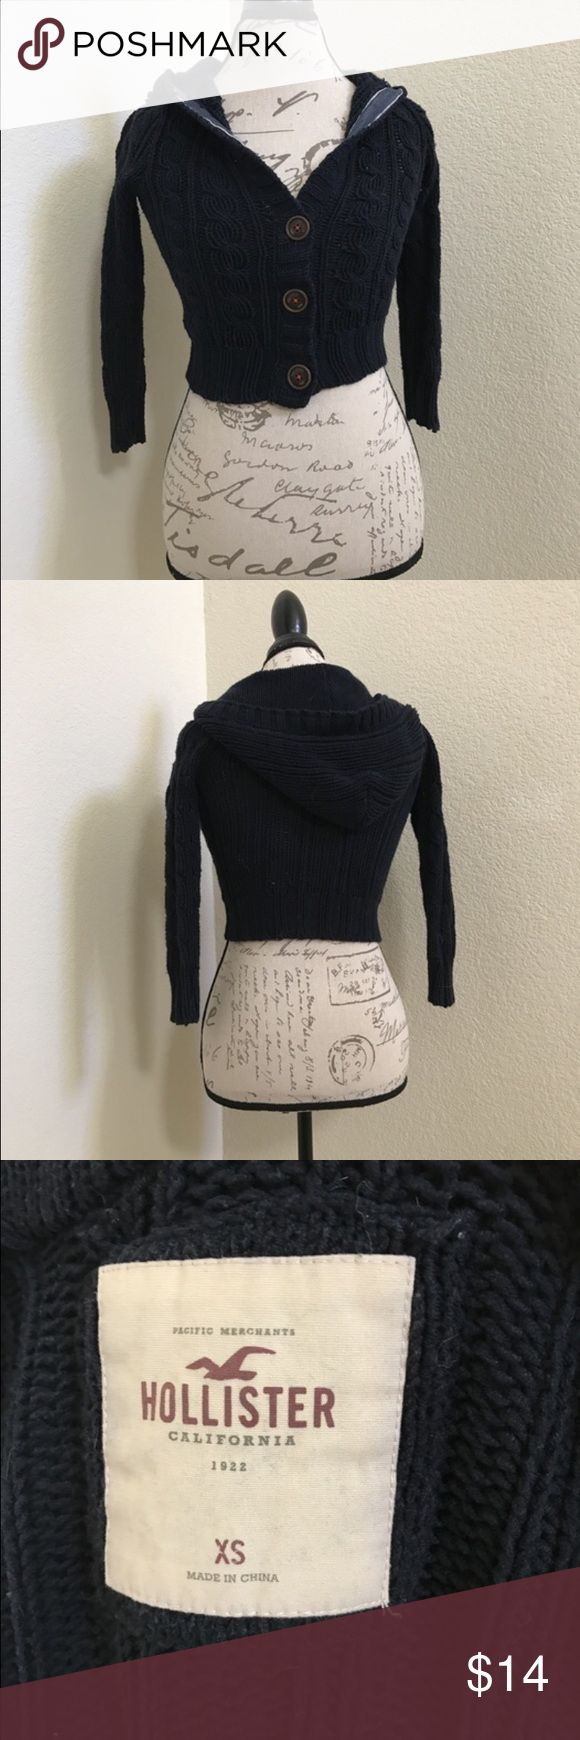 Navy Hollister Crop Knit Cardigan Navy Hollister Crop Knit Sweater w/ Hood. Super cute and in great condition! #hollister #navy #cropknit #crop #knit #crophoodie #hoodie   *I am open to negotiations and I love doing bundle deals! Message me!  *If you need any measurements or have any questions please don't be afraid to ask!  *I try my best to list the true condition of the item as far as any flaws, defects, or holes!  *Everything is from a non-smoking home, pet friendly home!  *Ask me…